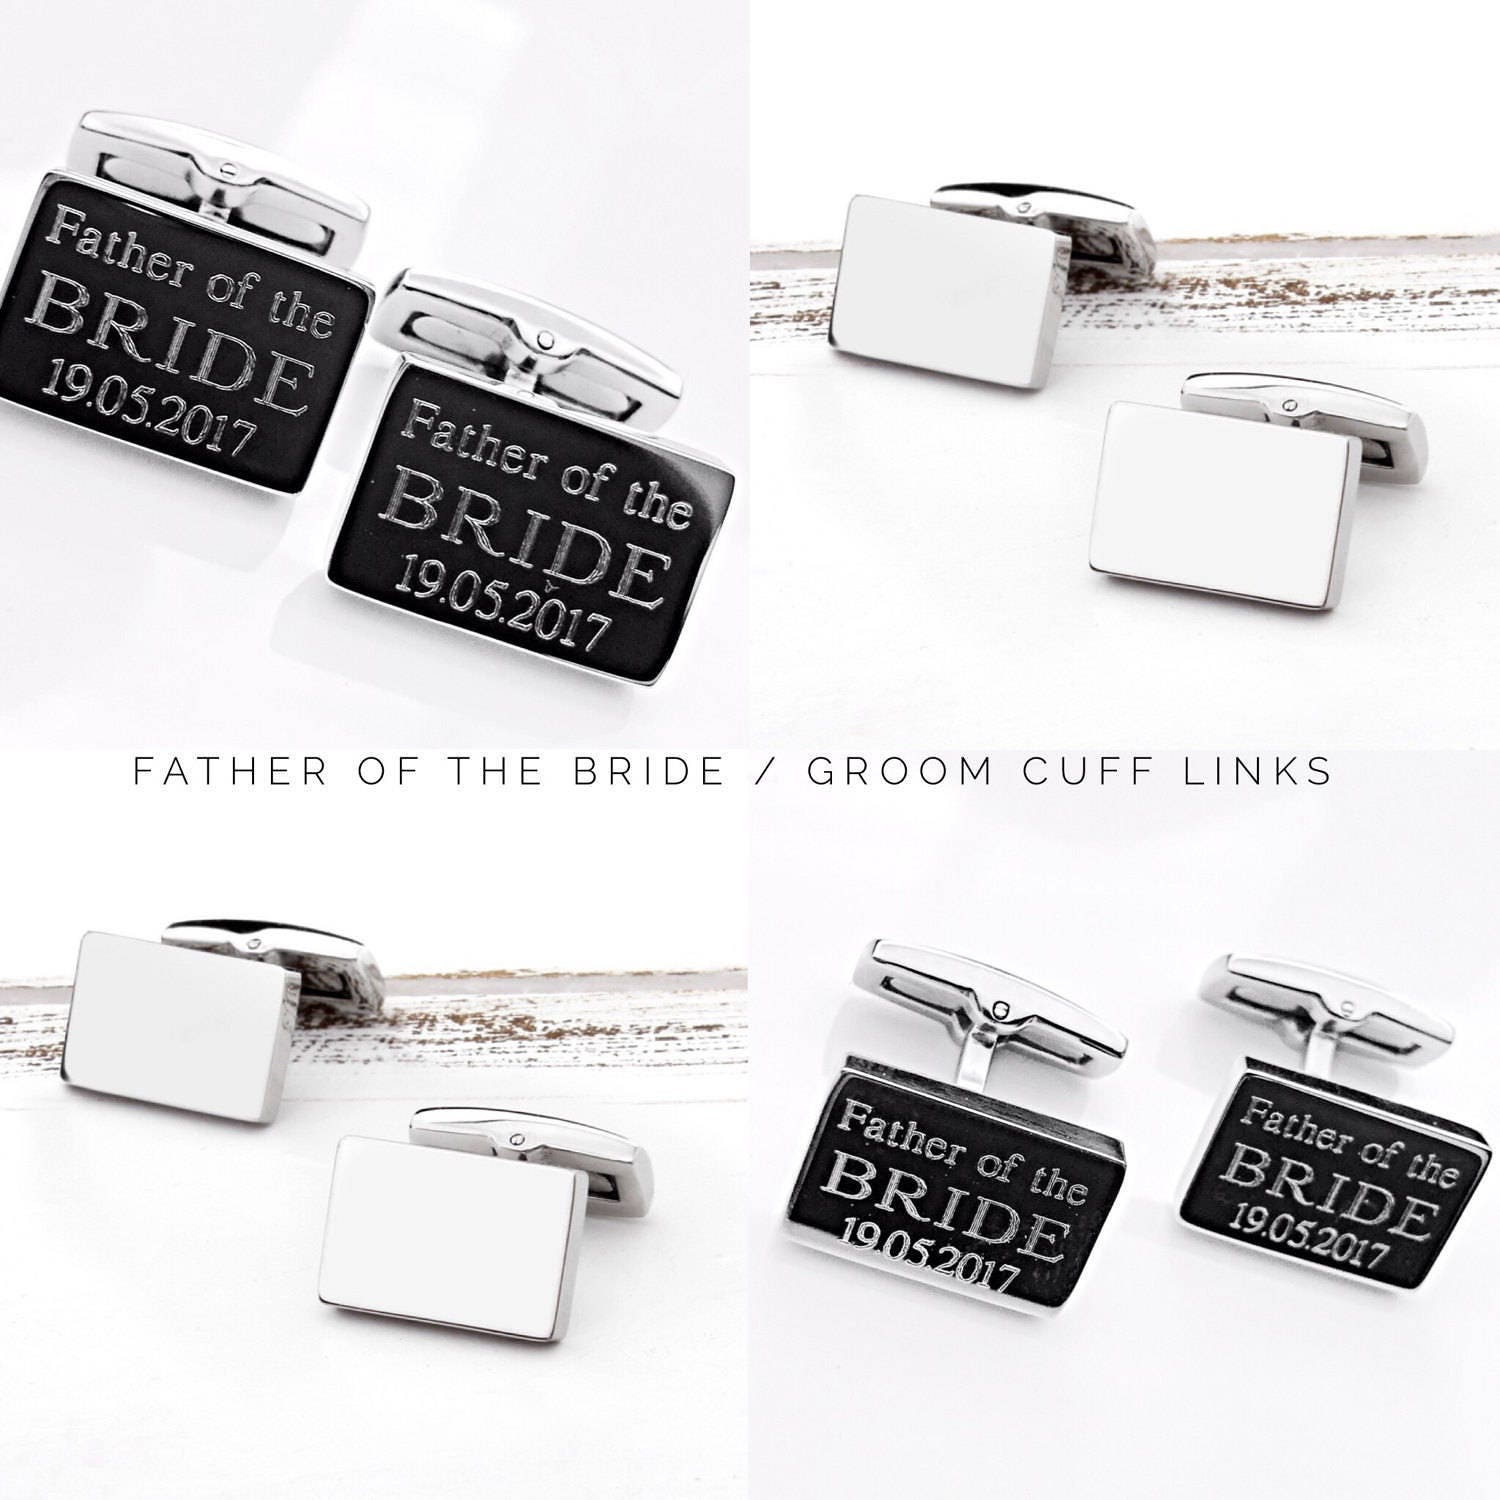 Father of the Bride  Father of the Groom Cufflinks (silver) Mens Gifts  Personalized Cufflinks Mens cufflinks Gift Ideas for Men (W272)